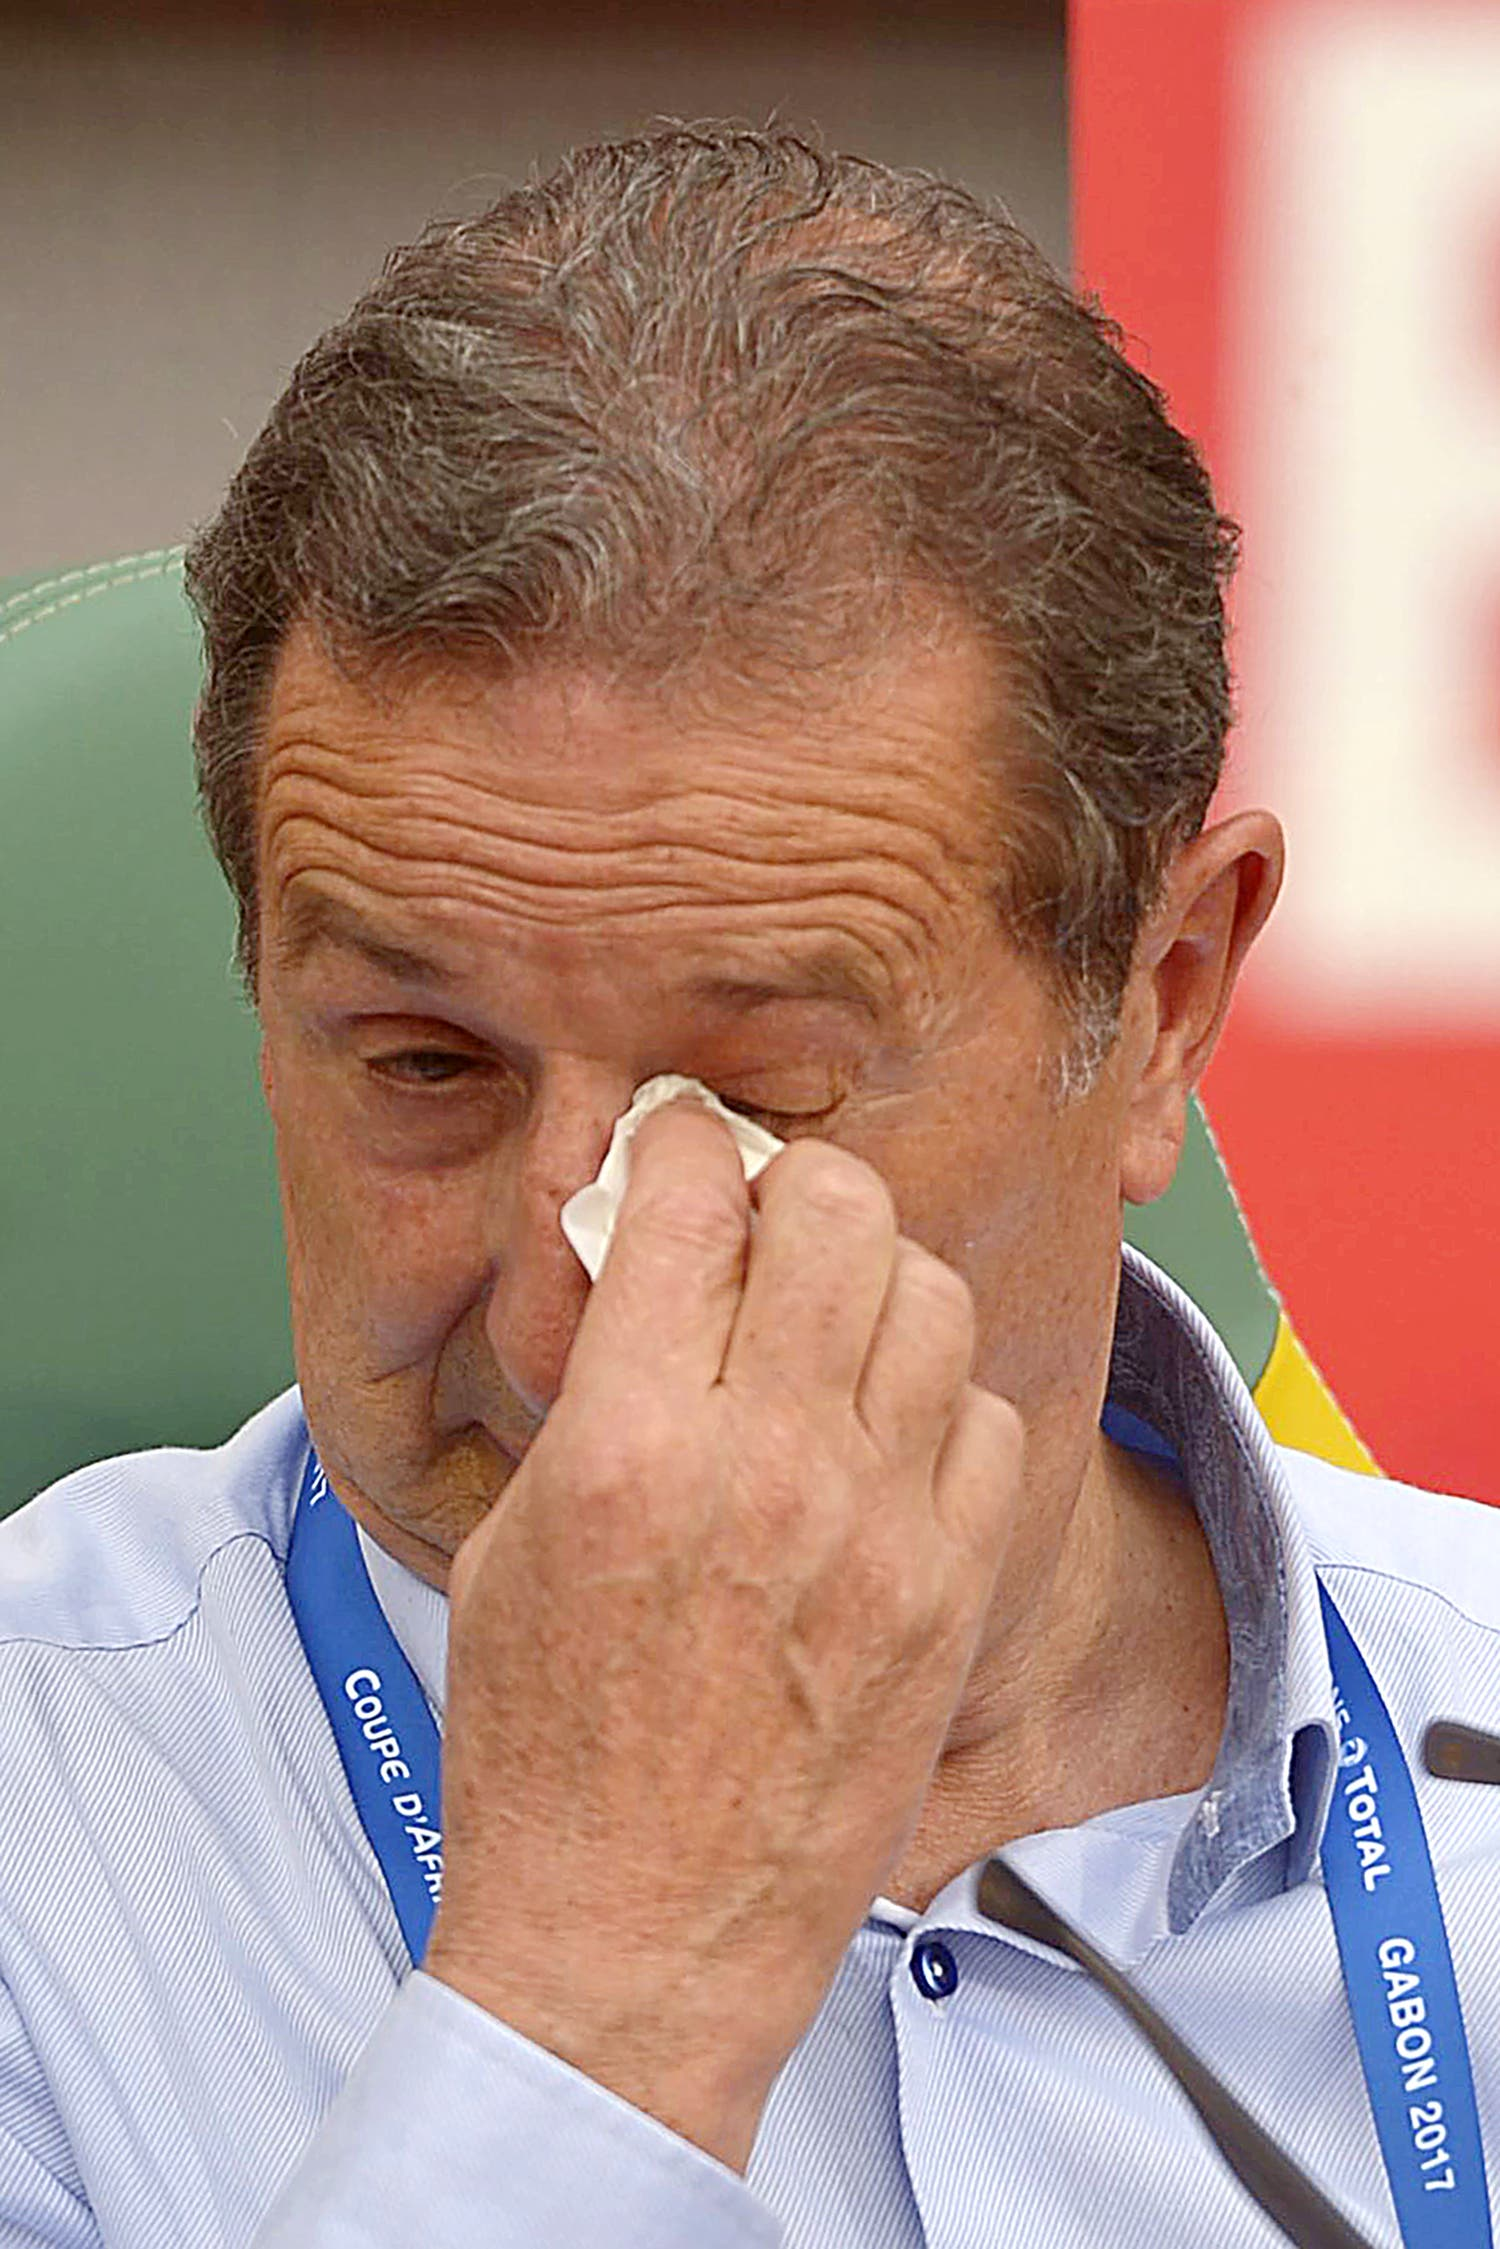 Algeria's Belgian coach Georges Leekens wipes his eye during the 2017 Africa Cup of Nations group B football match between Algeria and Tunisia in Franceville on January 19, 2017. (AFP)